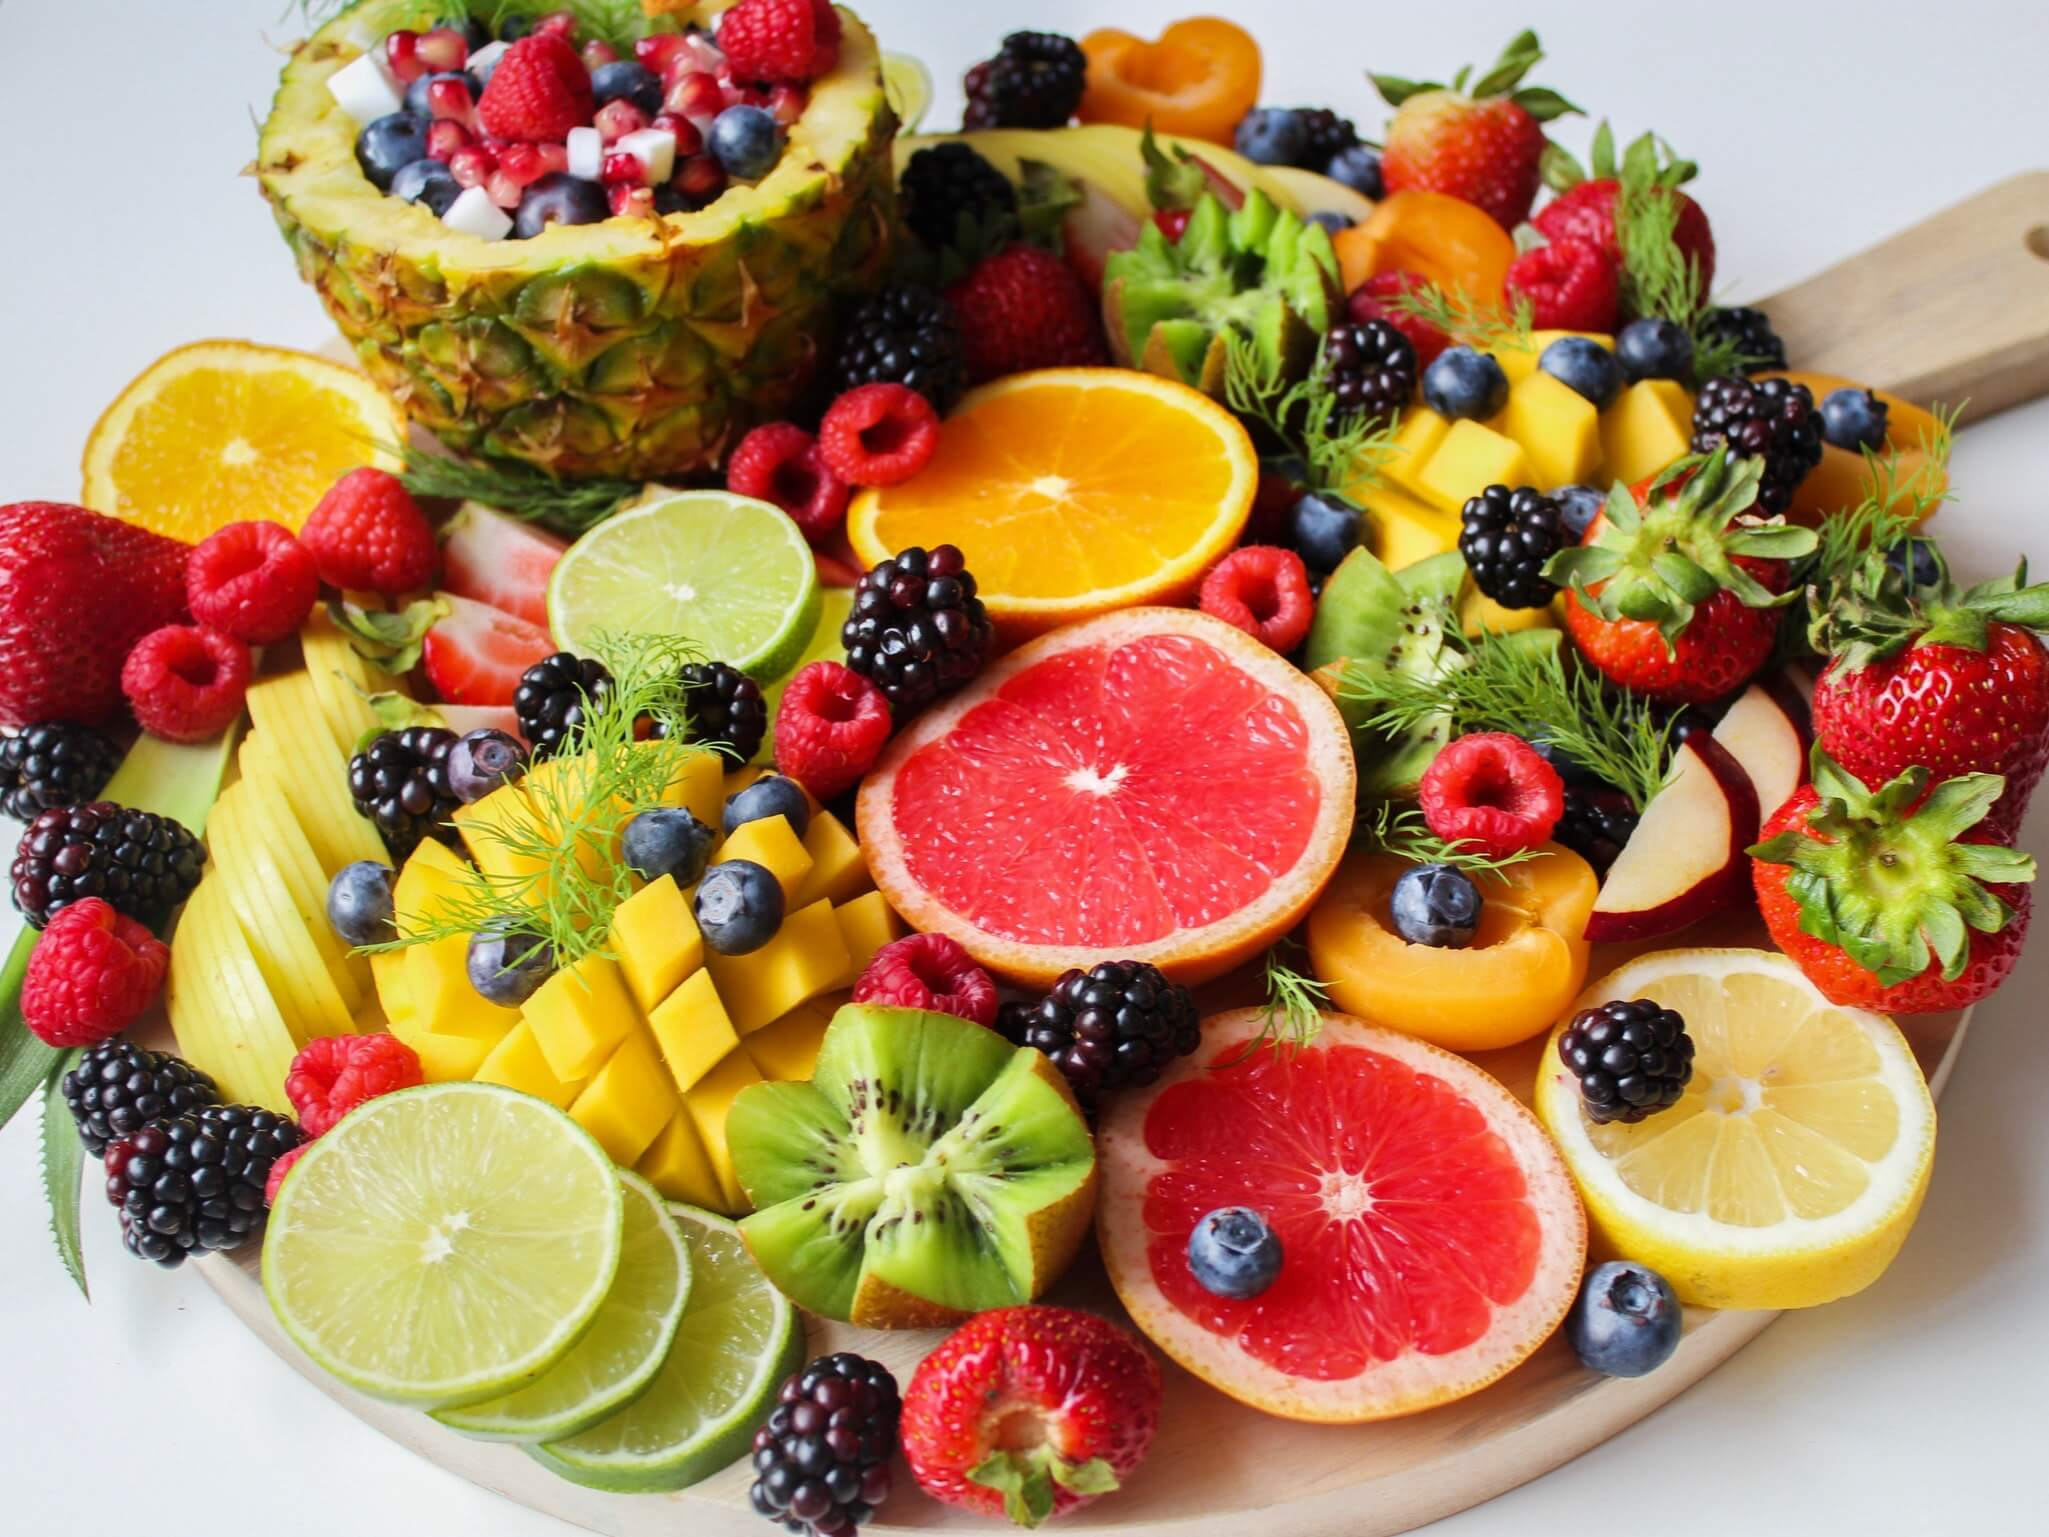 Colourful sliced fruits on tray